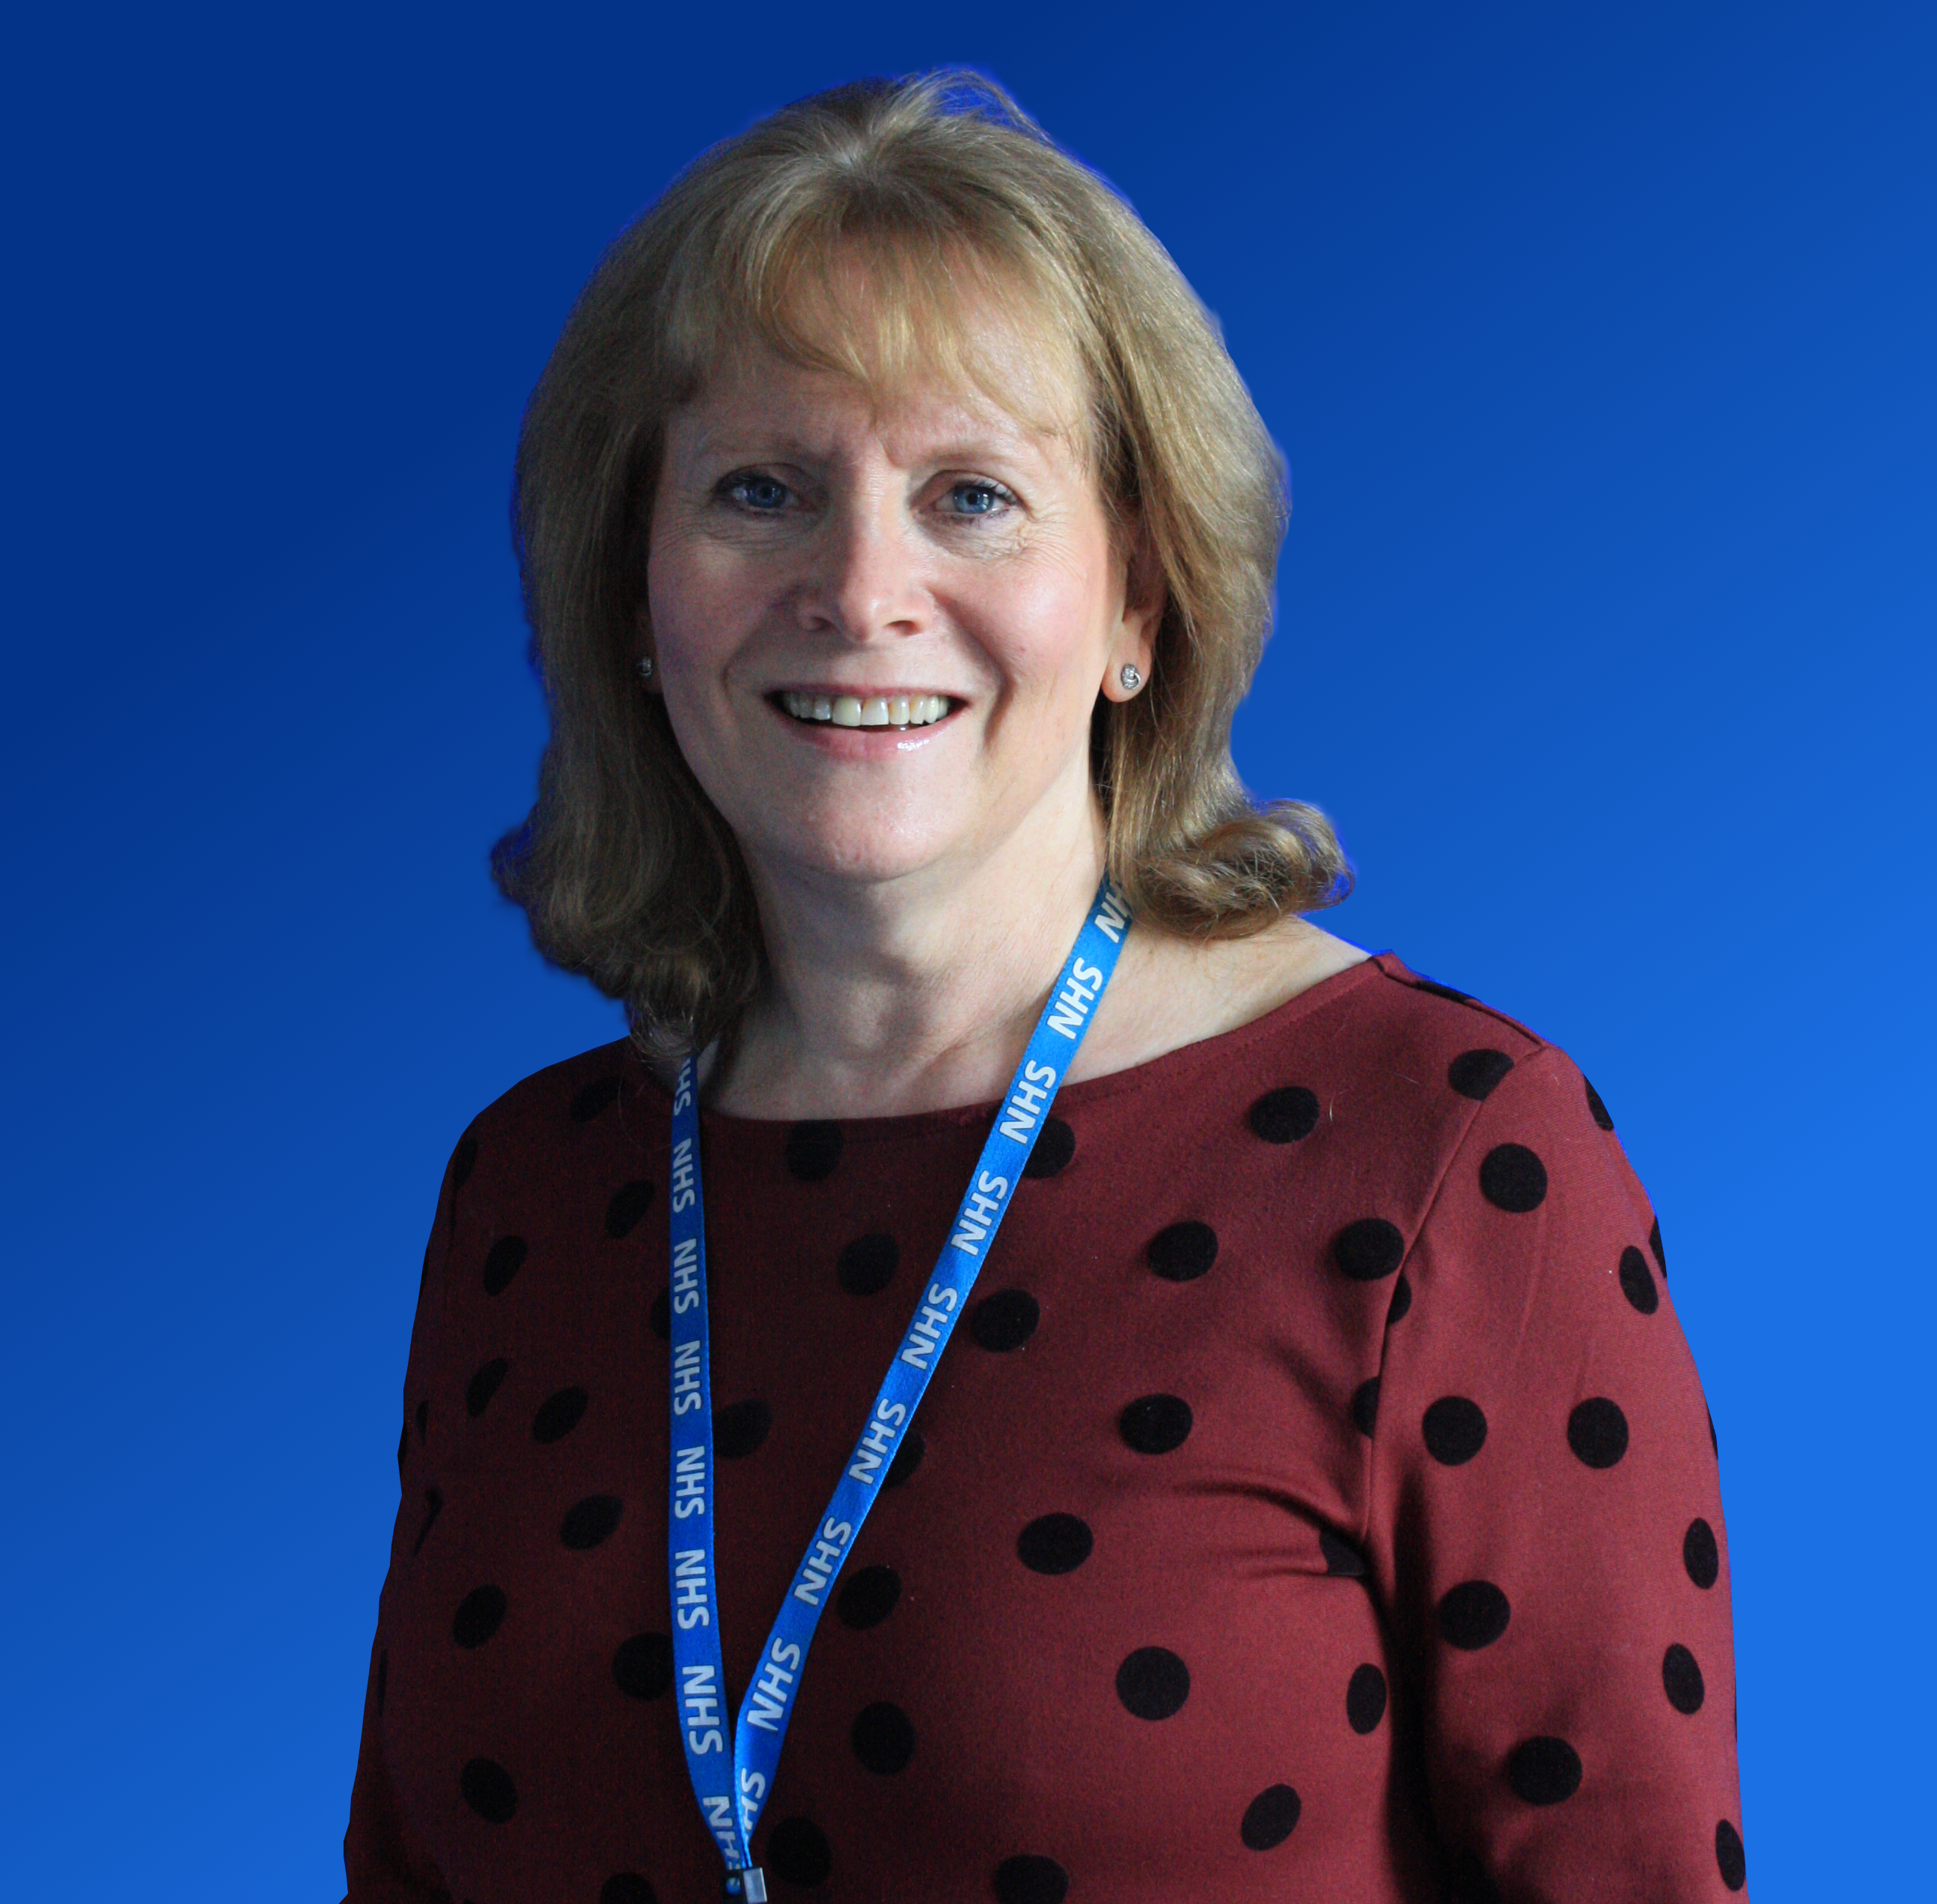 Sally Young - Director of Corporate Services, Governance and Communications